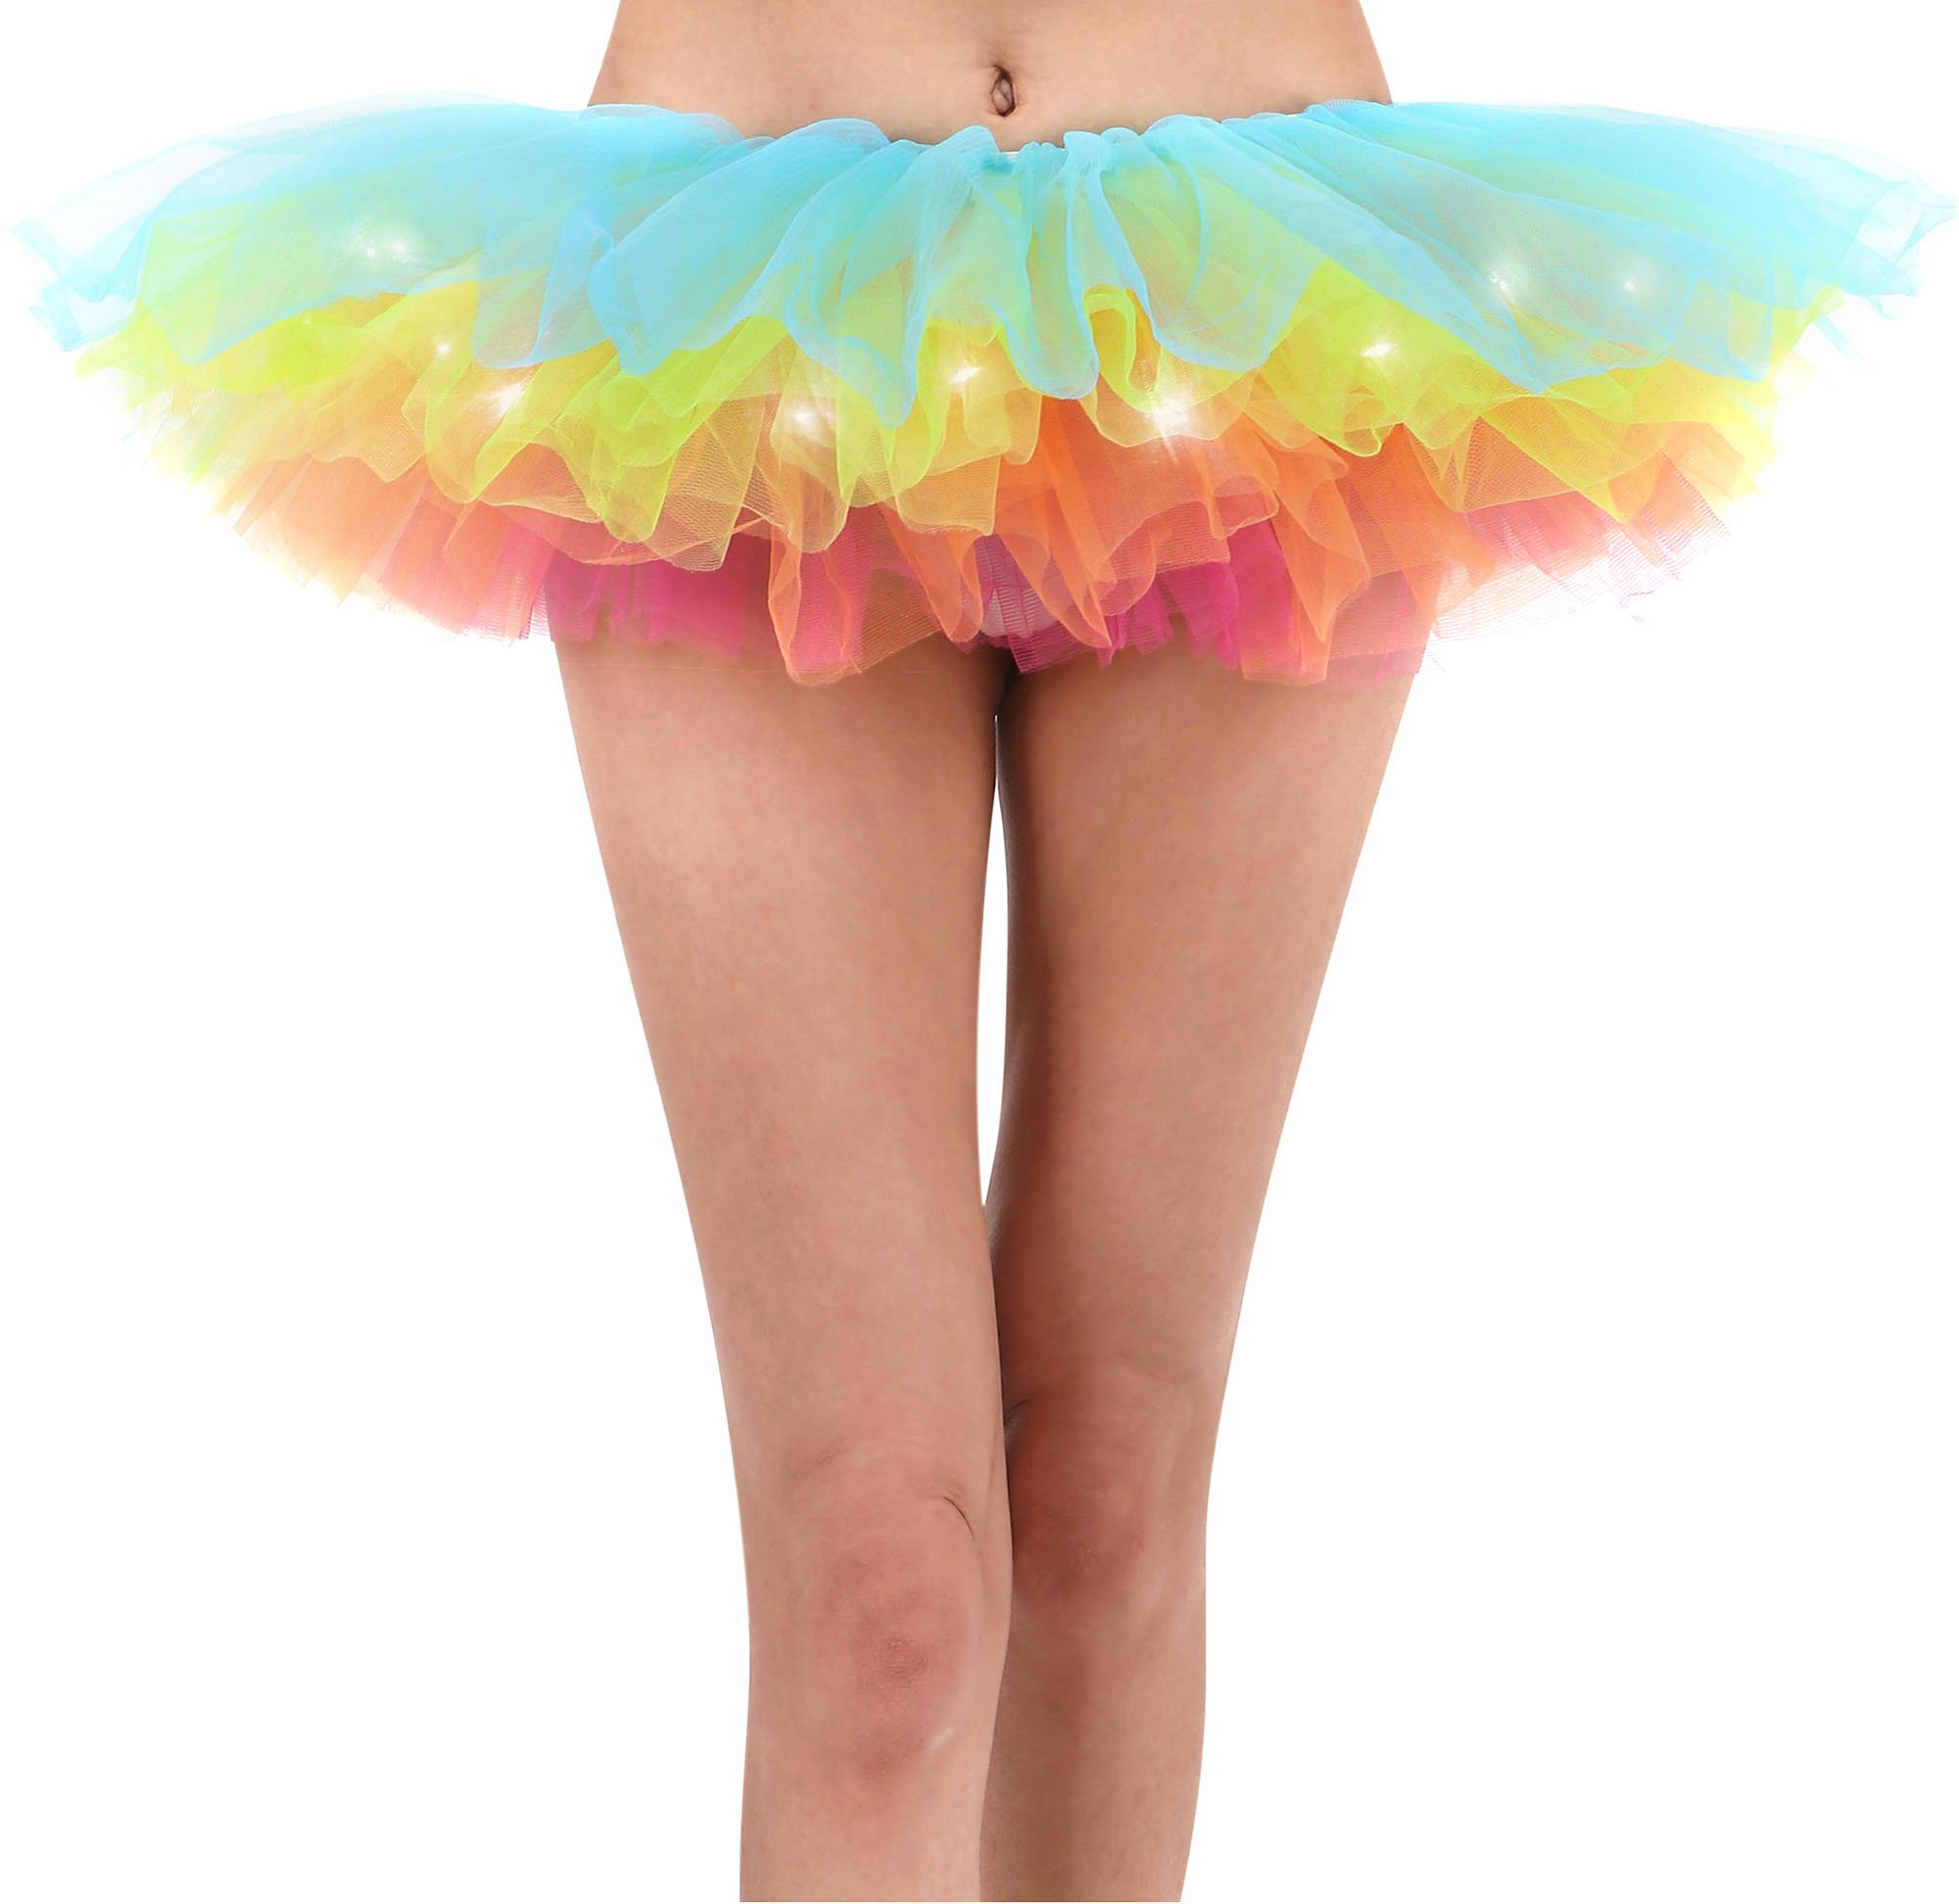 Women's Classic Fancy 5 Layered LED Light Up Tutu Party Skirt, Rainbow2